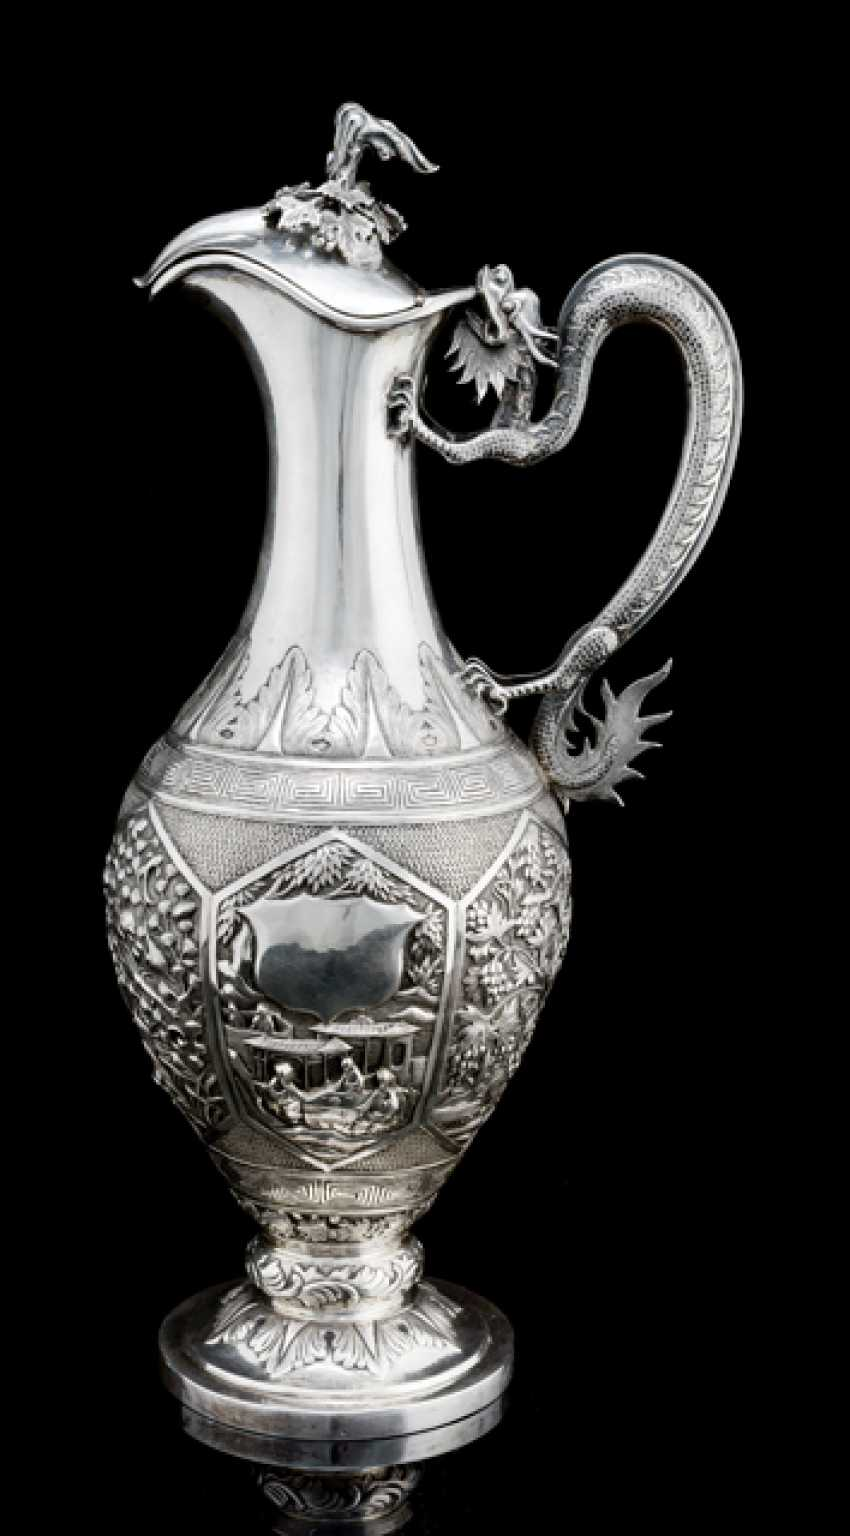 Fine and rare Export silver teapot with dragon handle and reliefuerten cartridges - photo 1